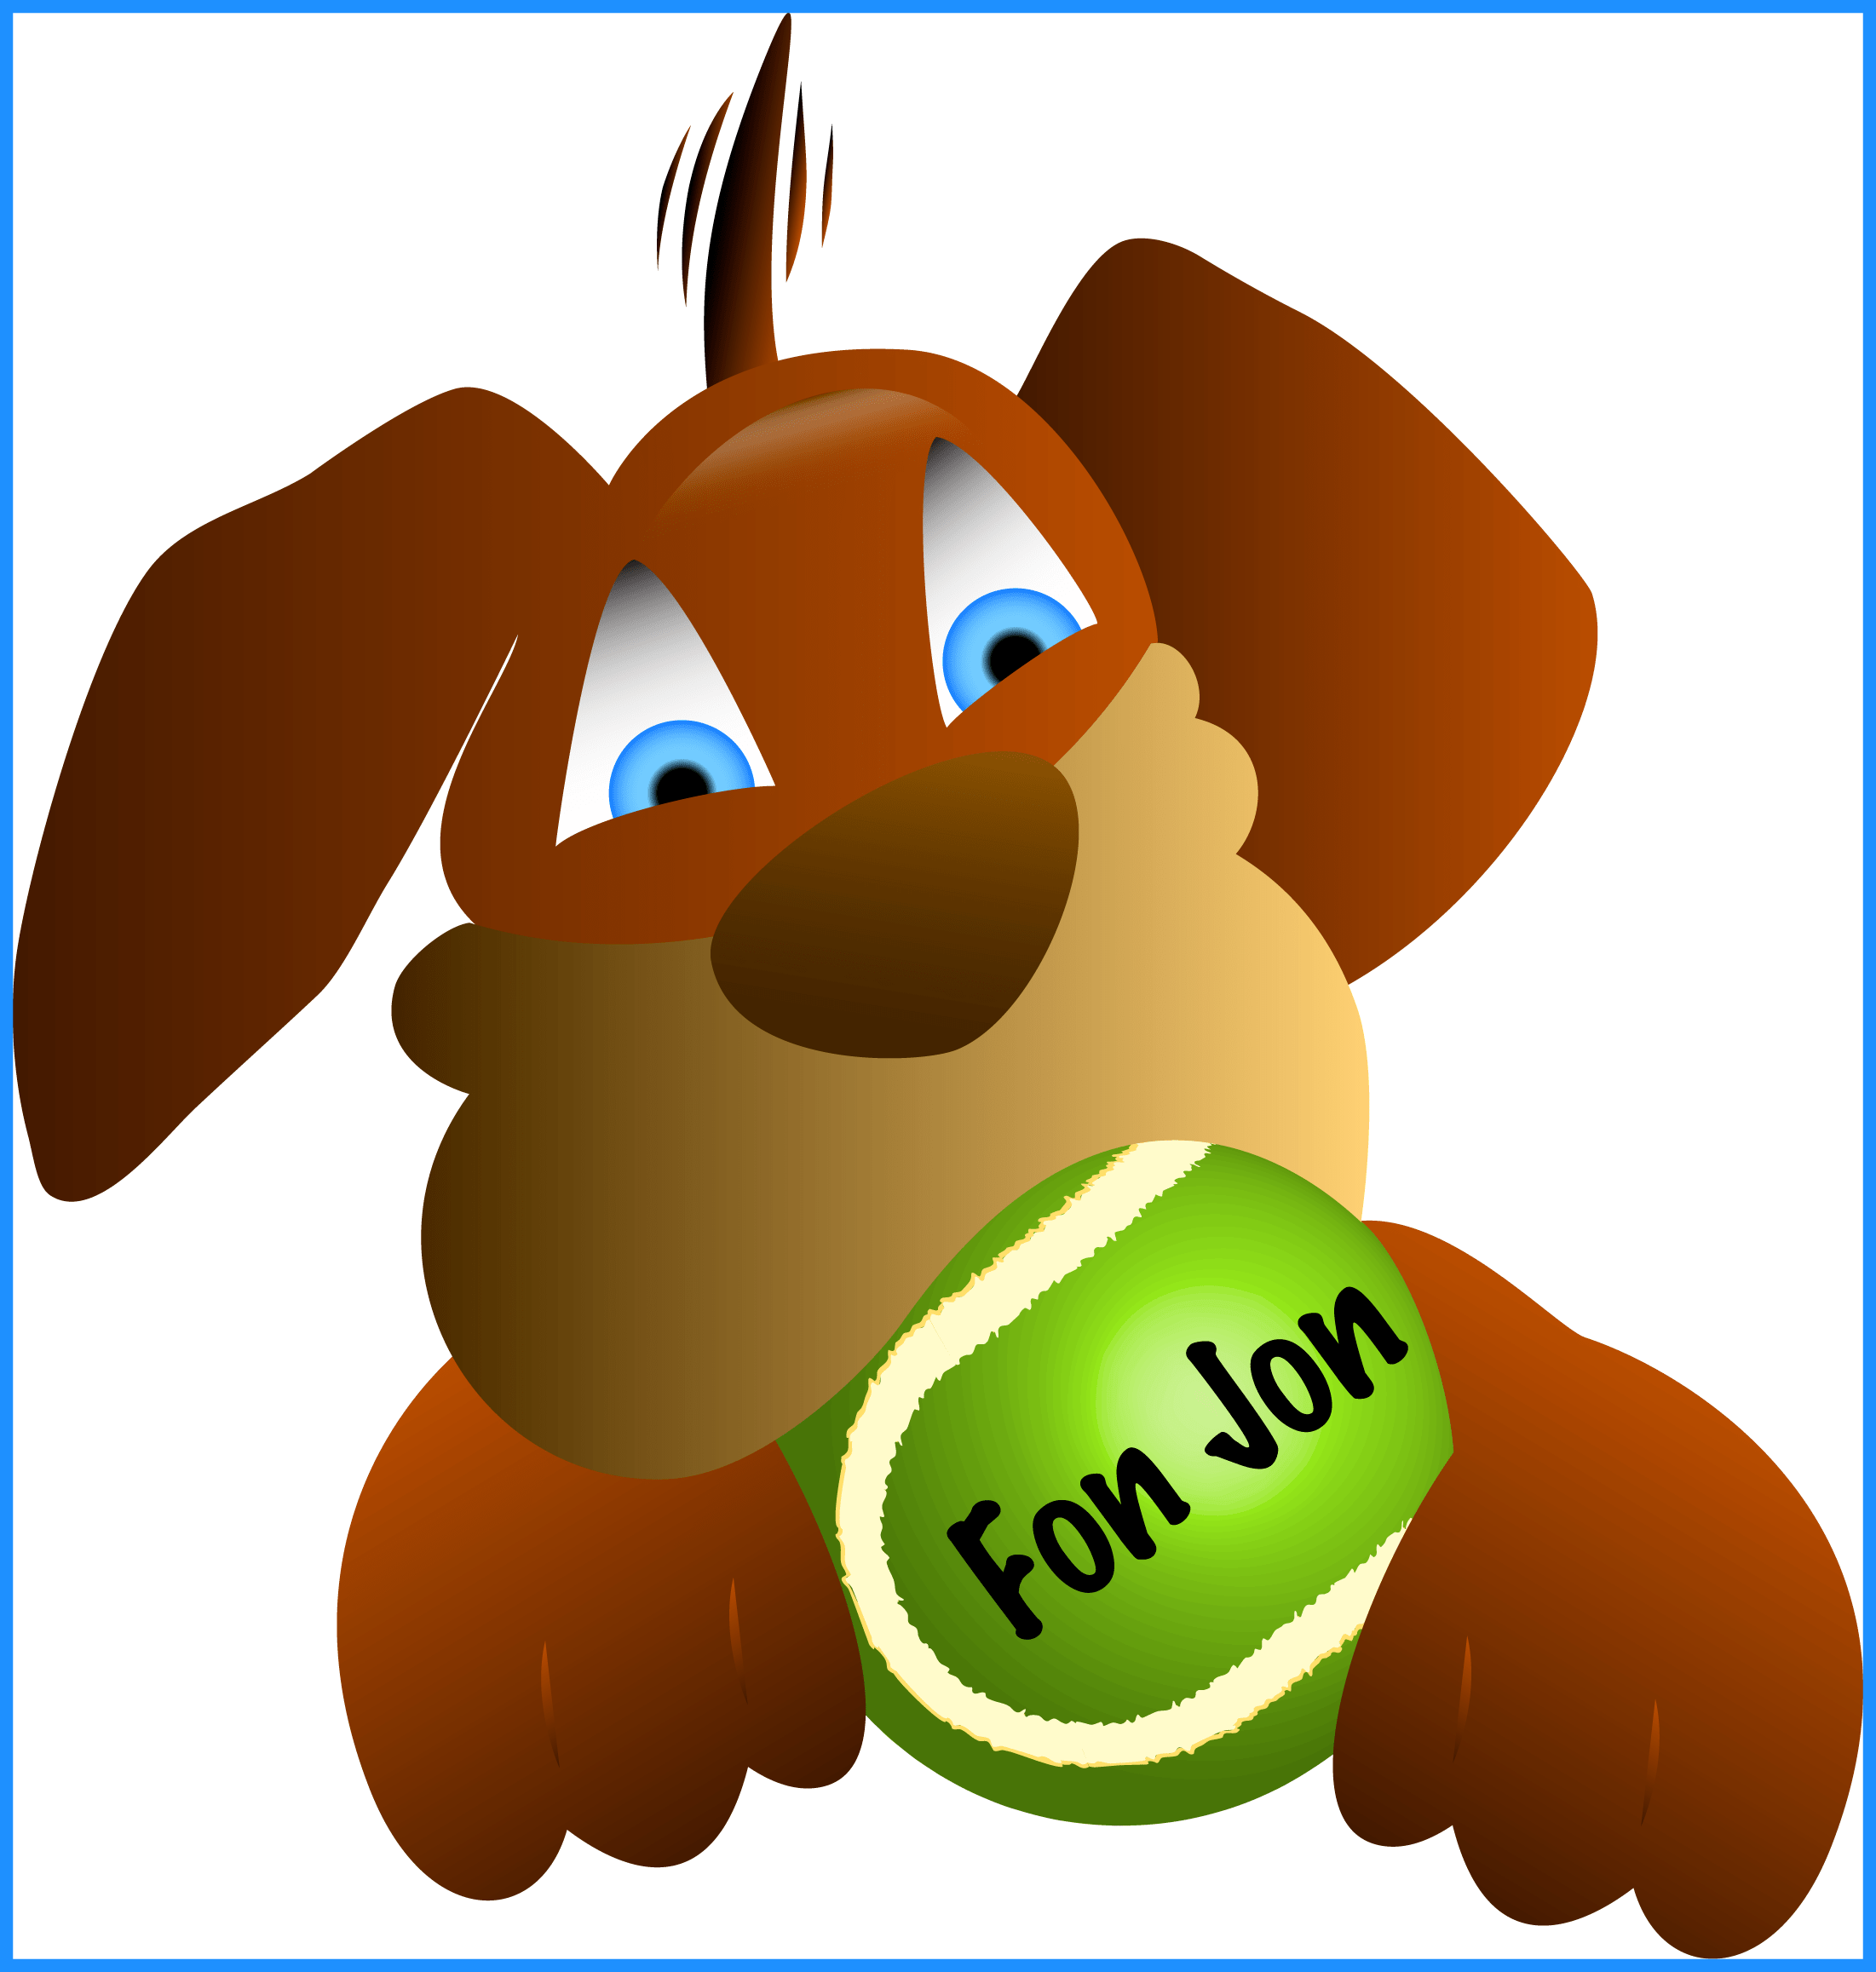 Doghouse clipart dog crate. Amazing tips after your